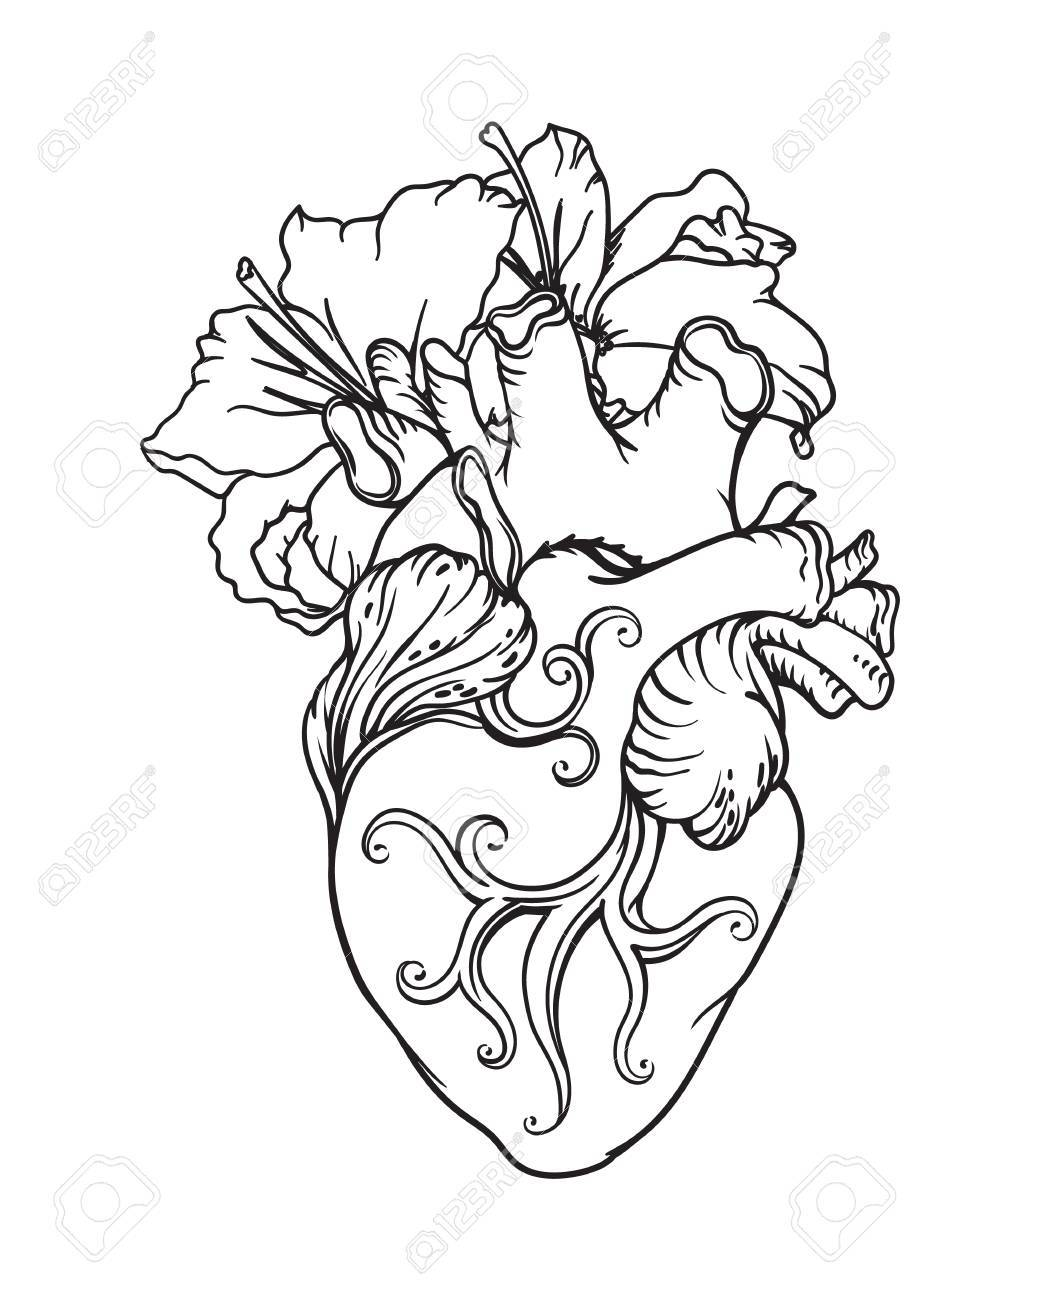 Stylized Anatomical Human Heart Drawing Heart With White Lilies